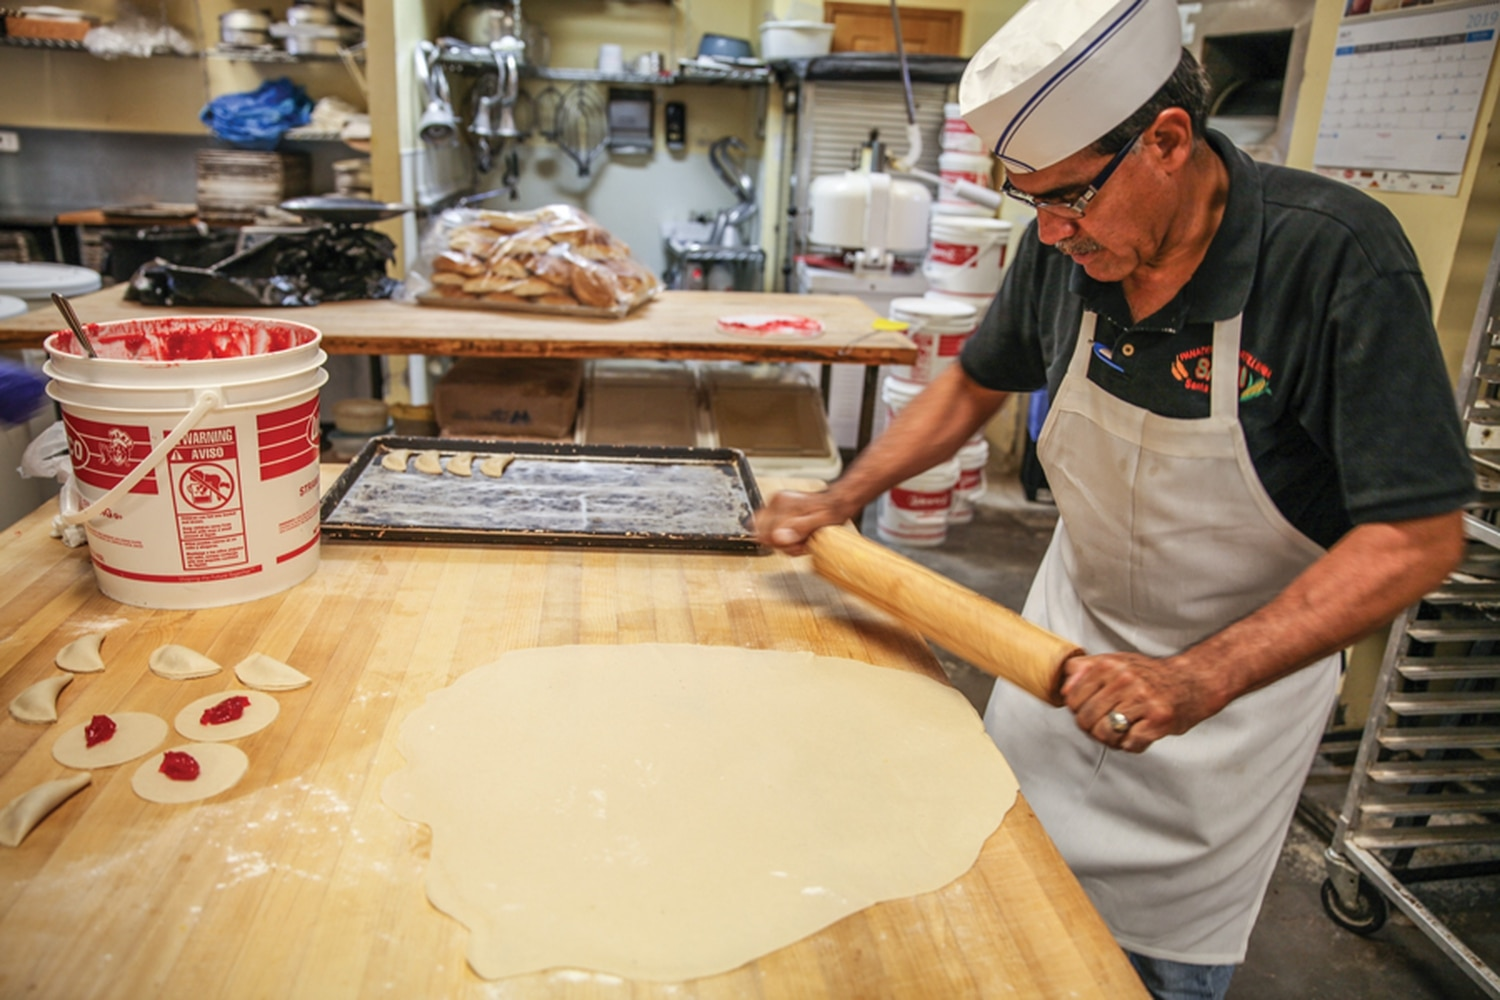 Cesar Araiza rolls out dough for fresh beer empanaditas in the kitchen of his bakery and store.